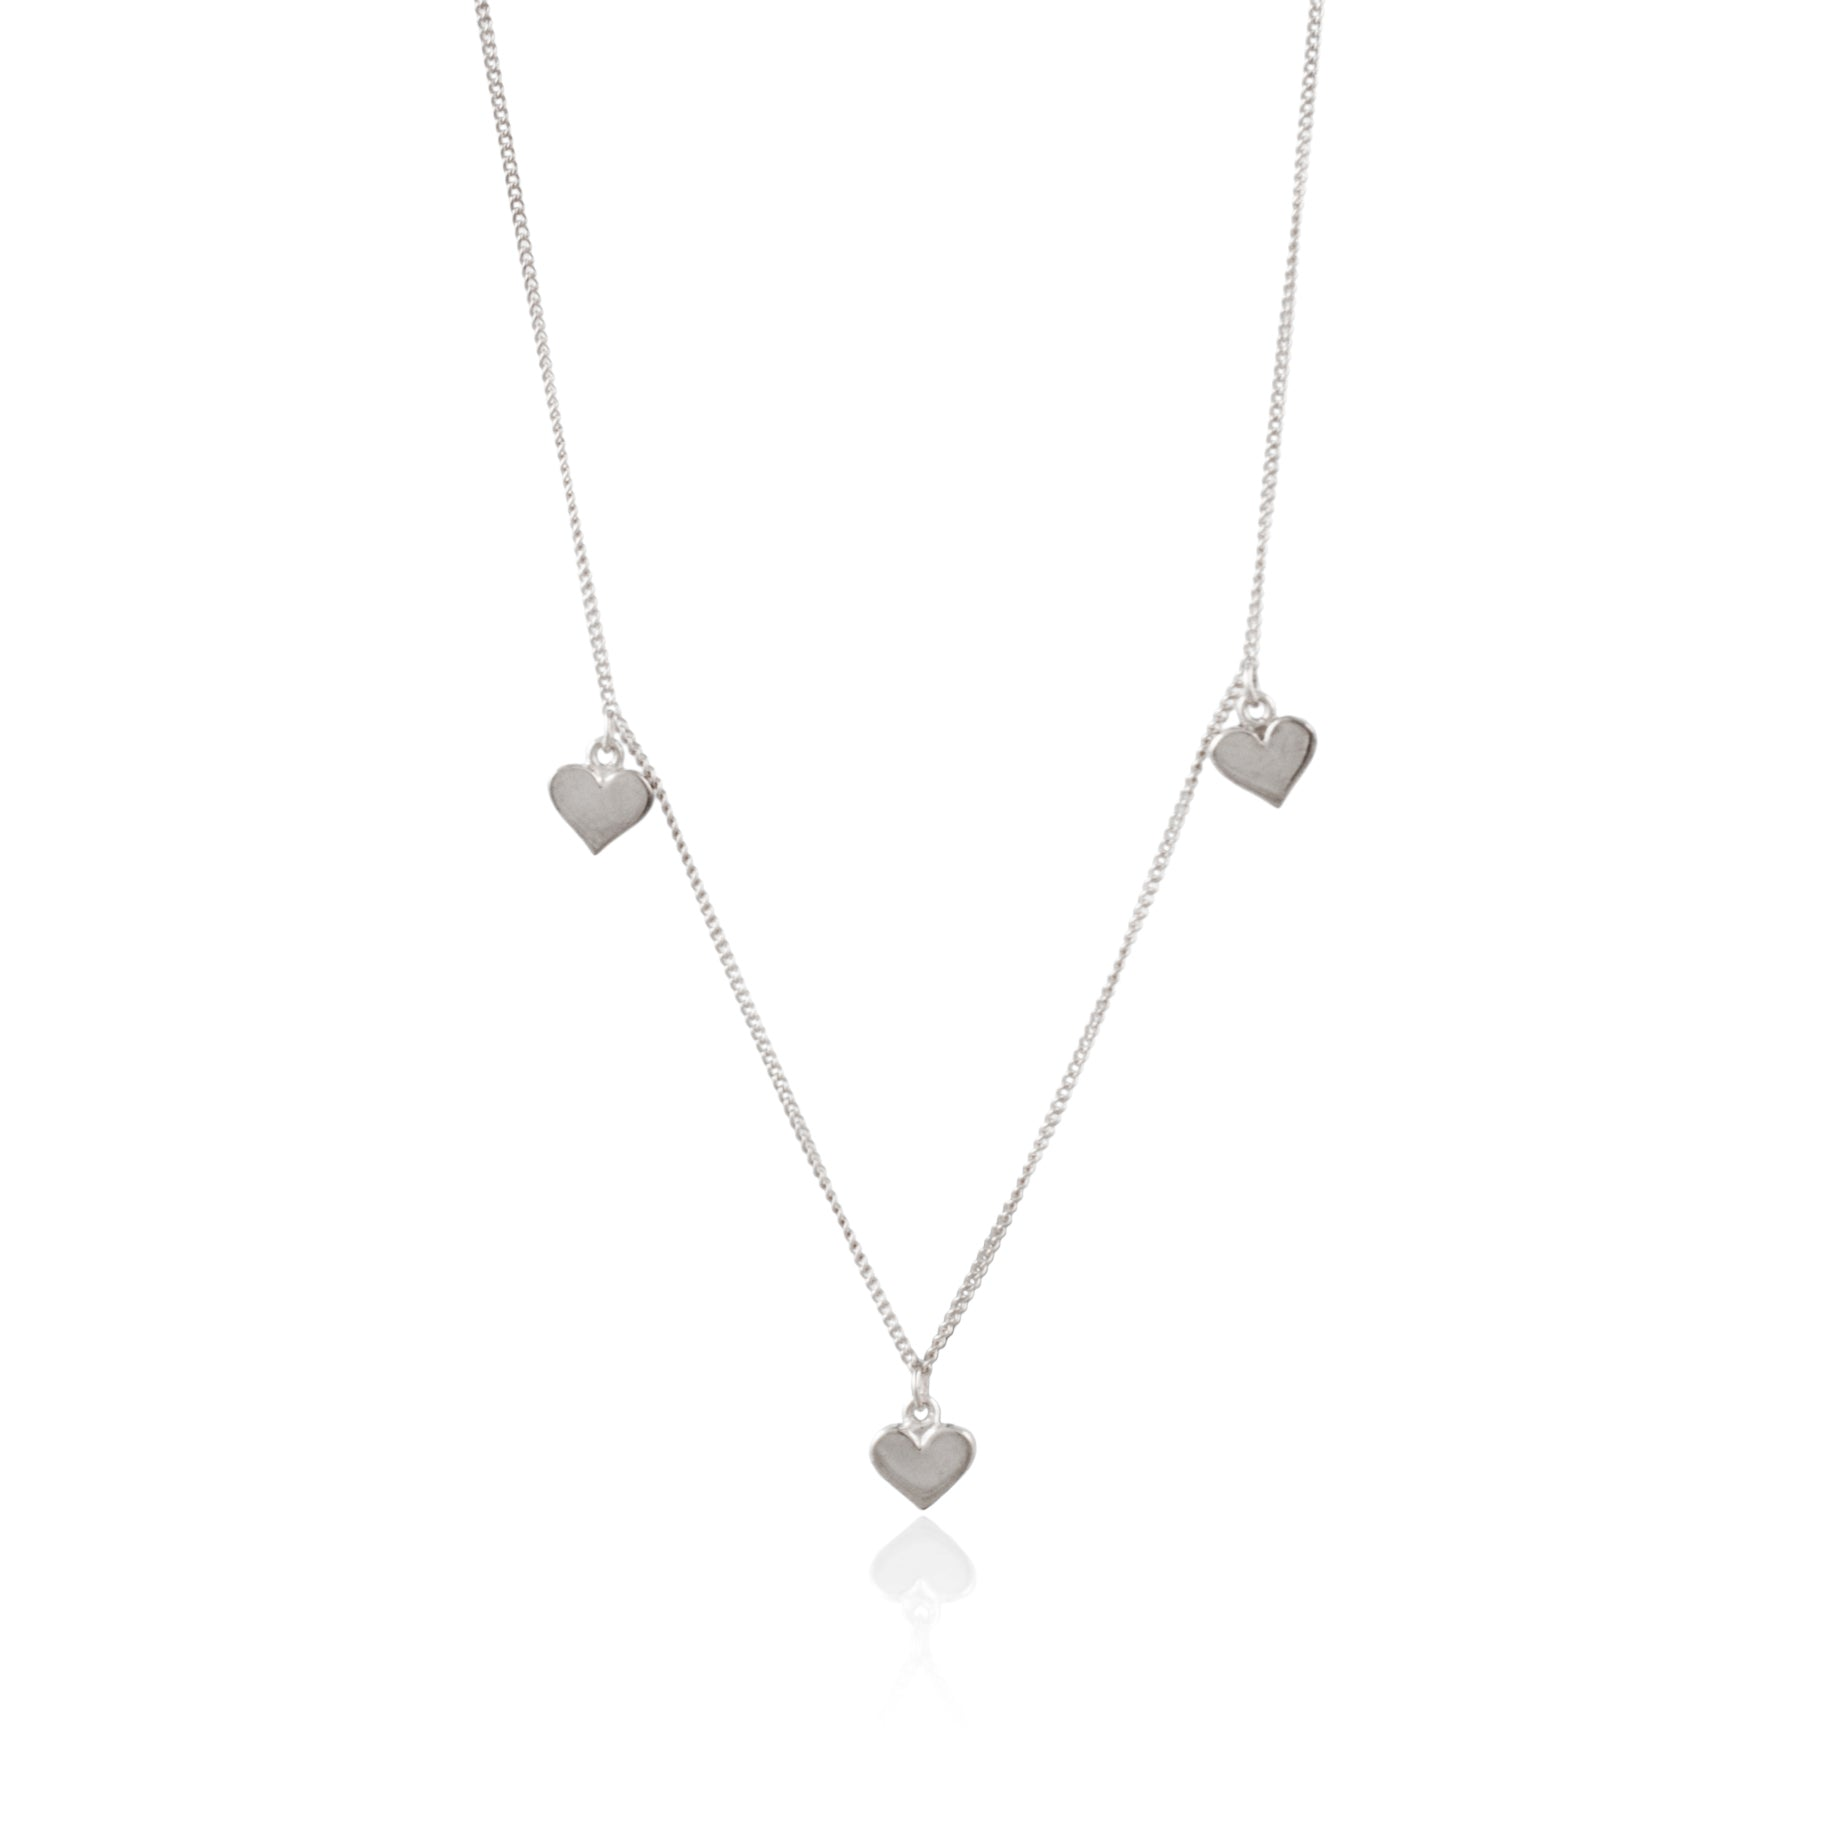 Triple Heart of Gold Necklace - (Silver)